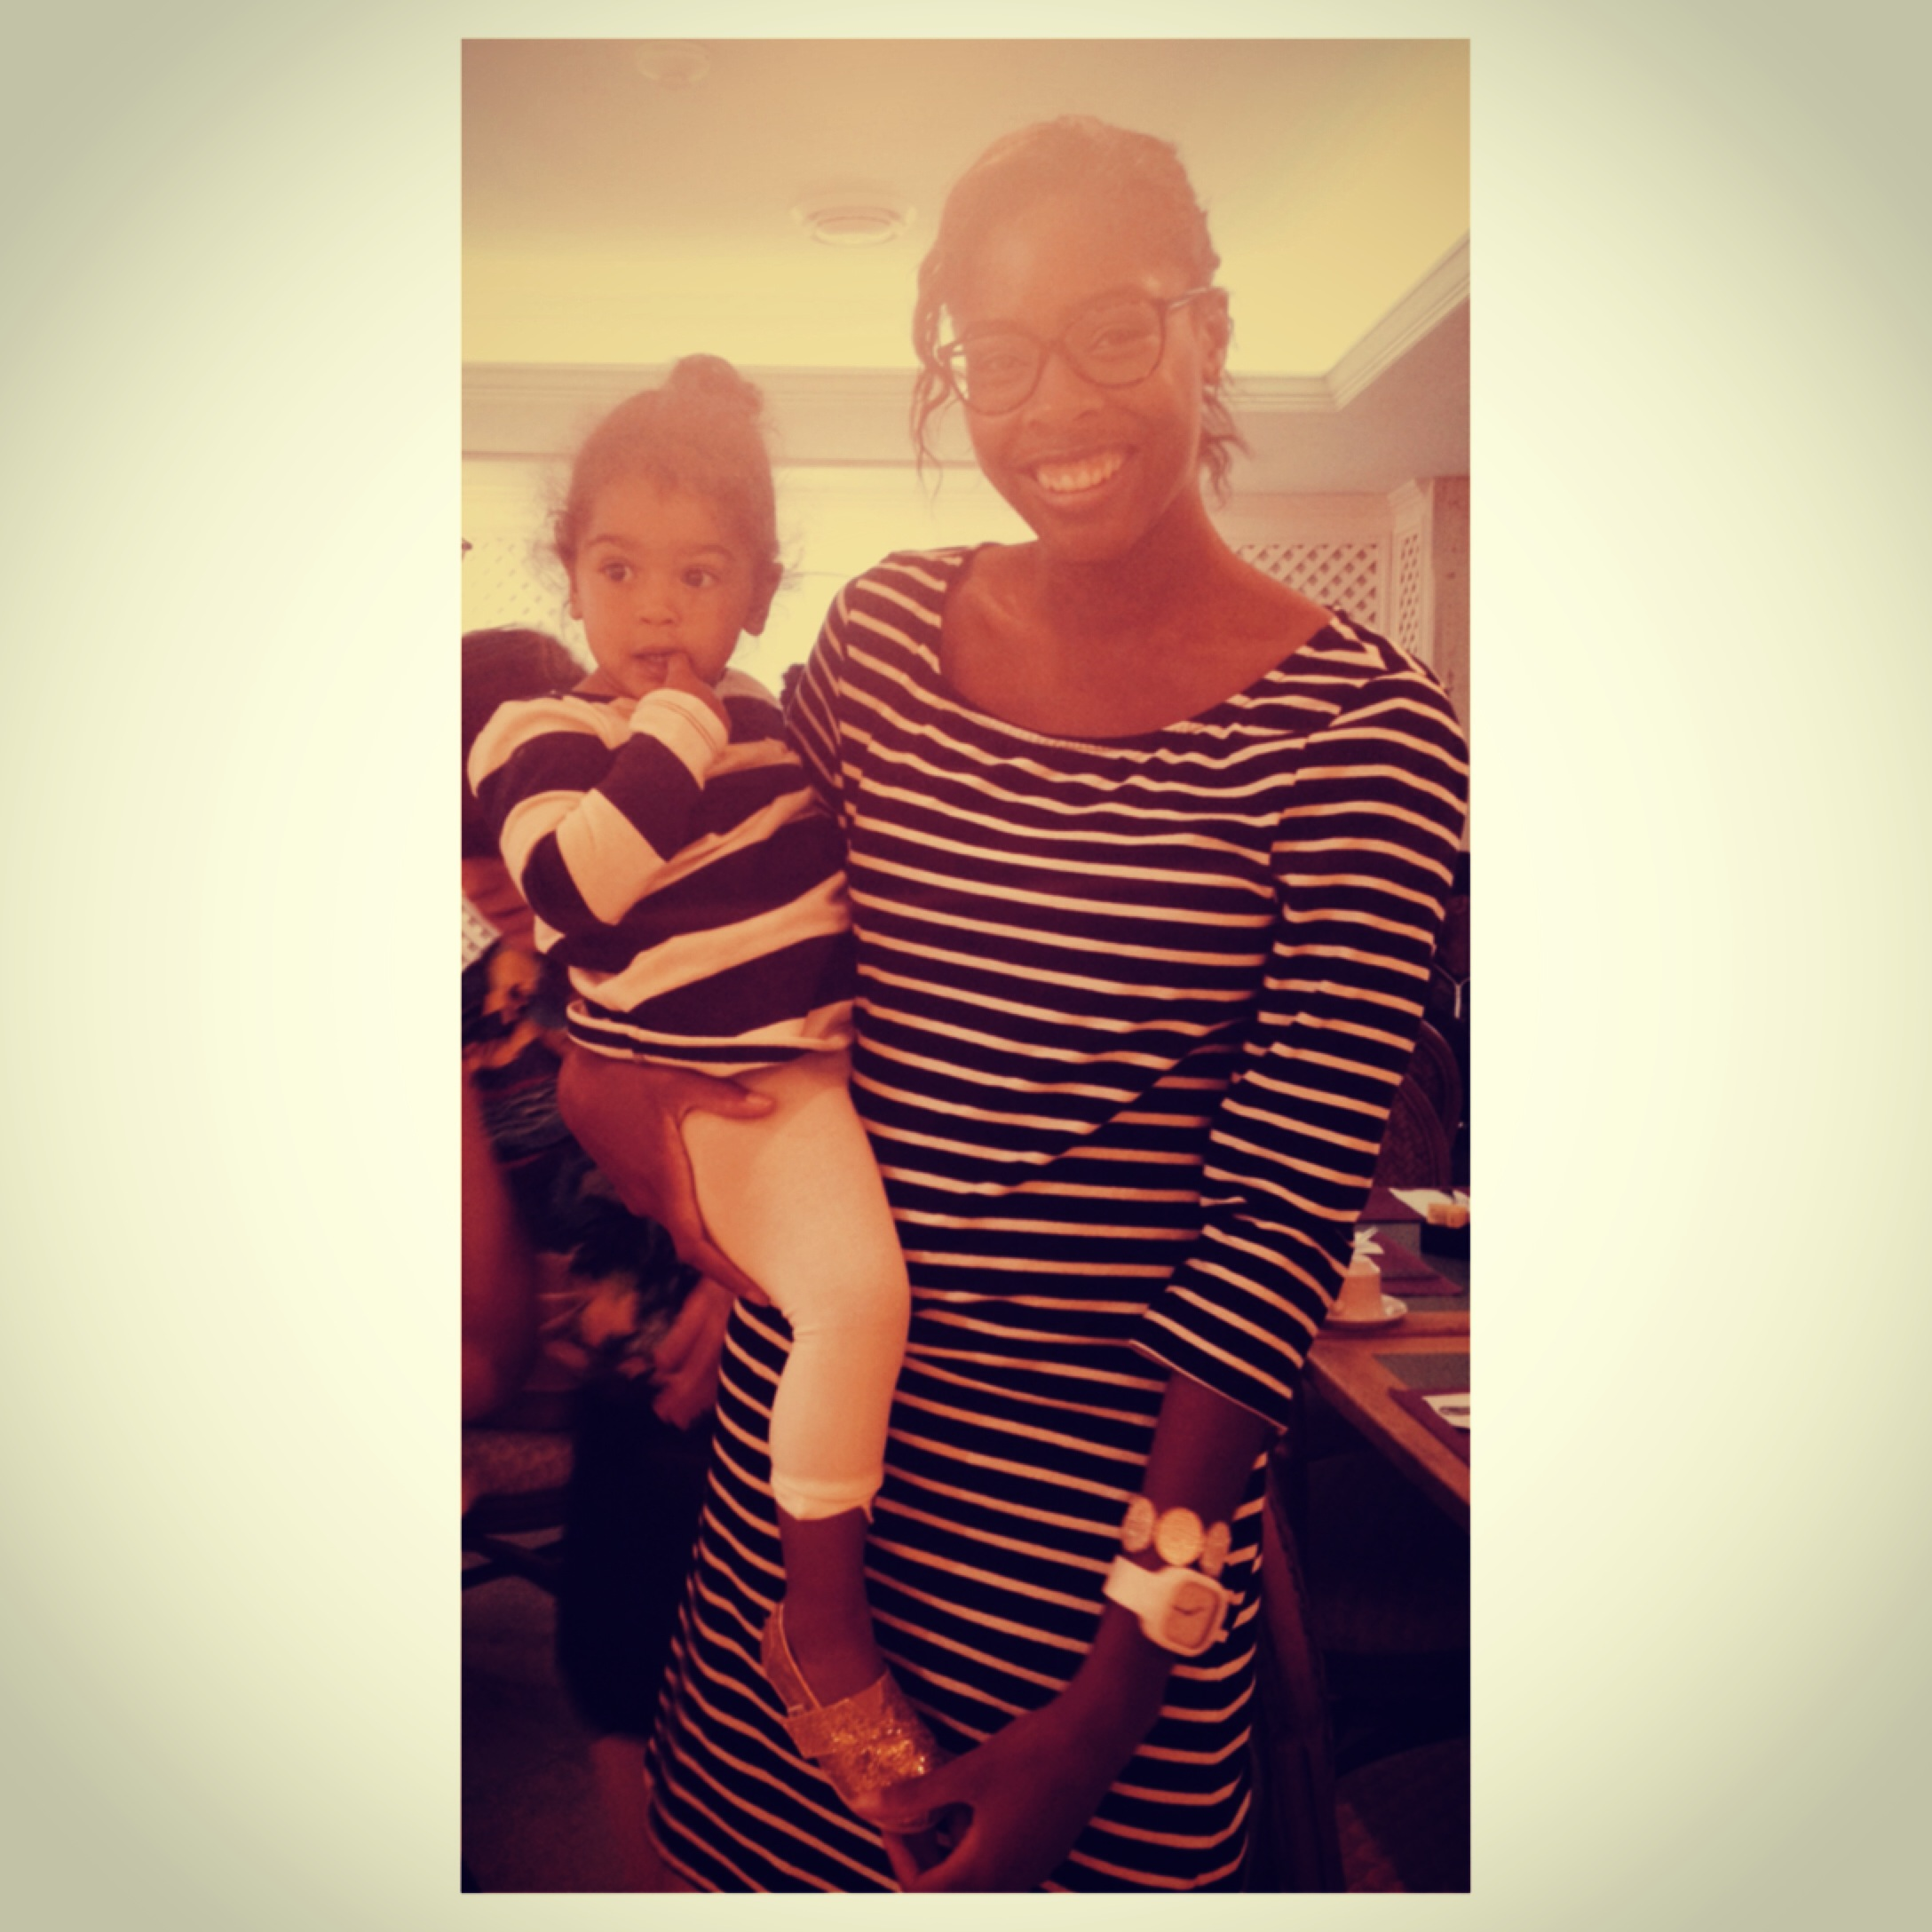 My baby cousin and I